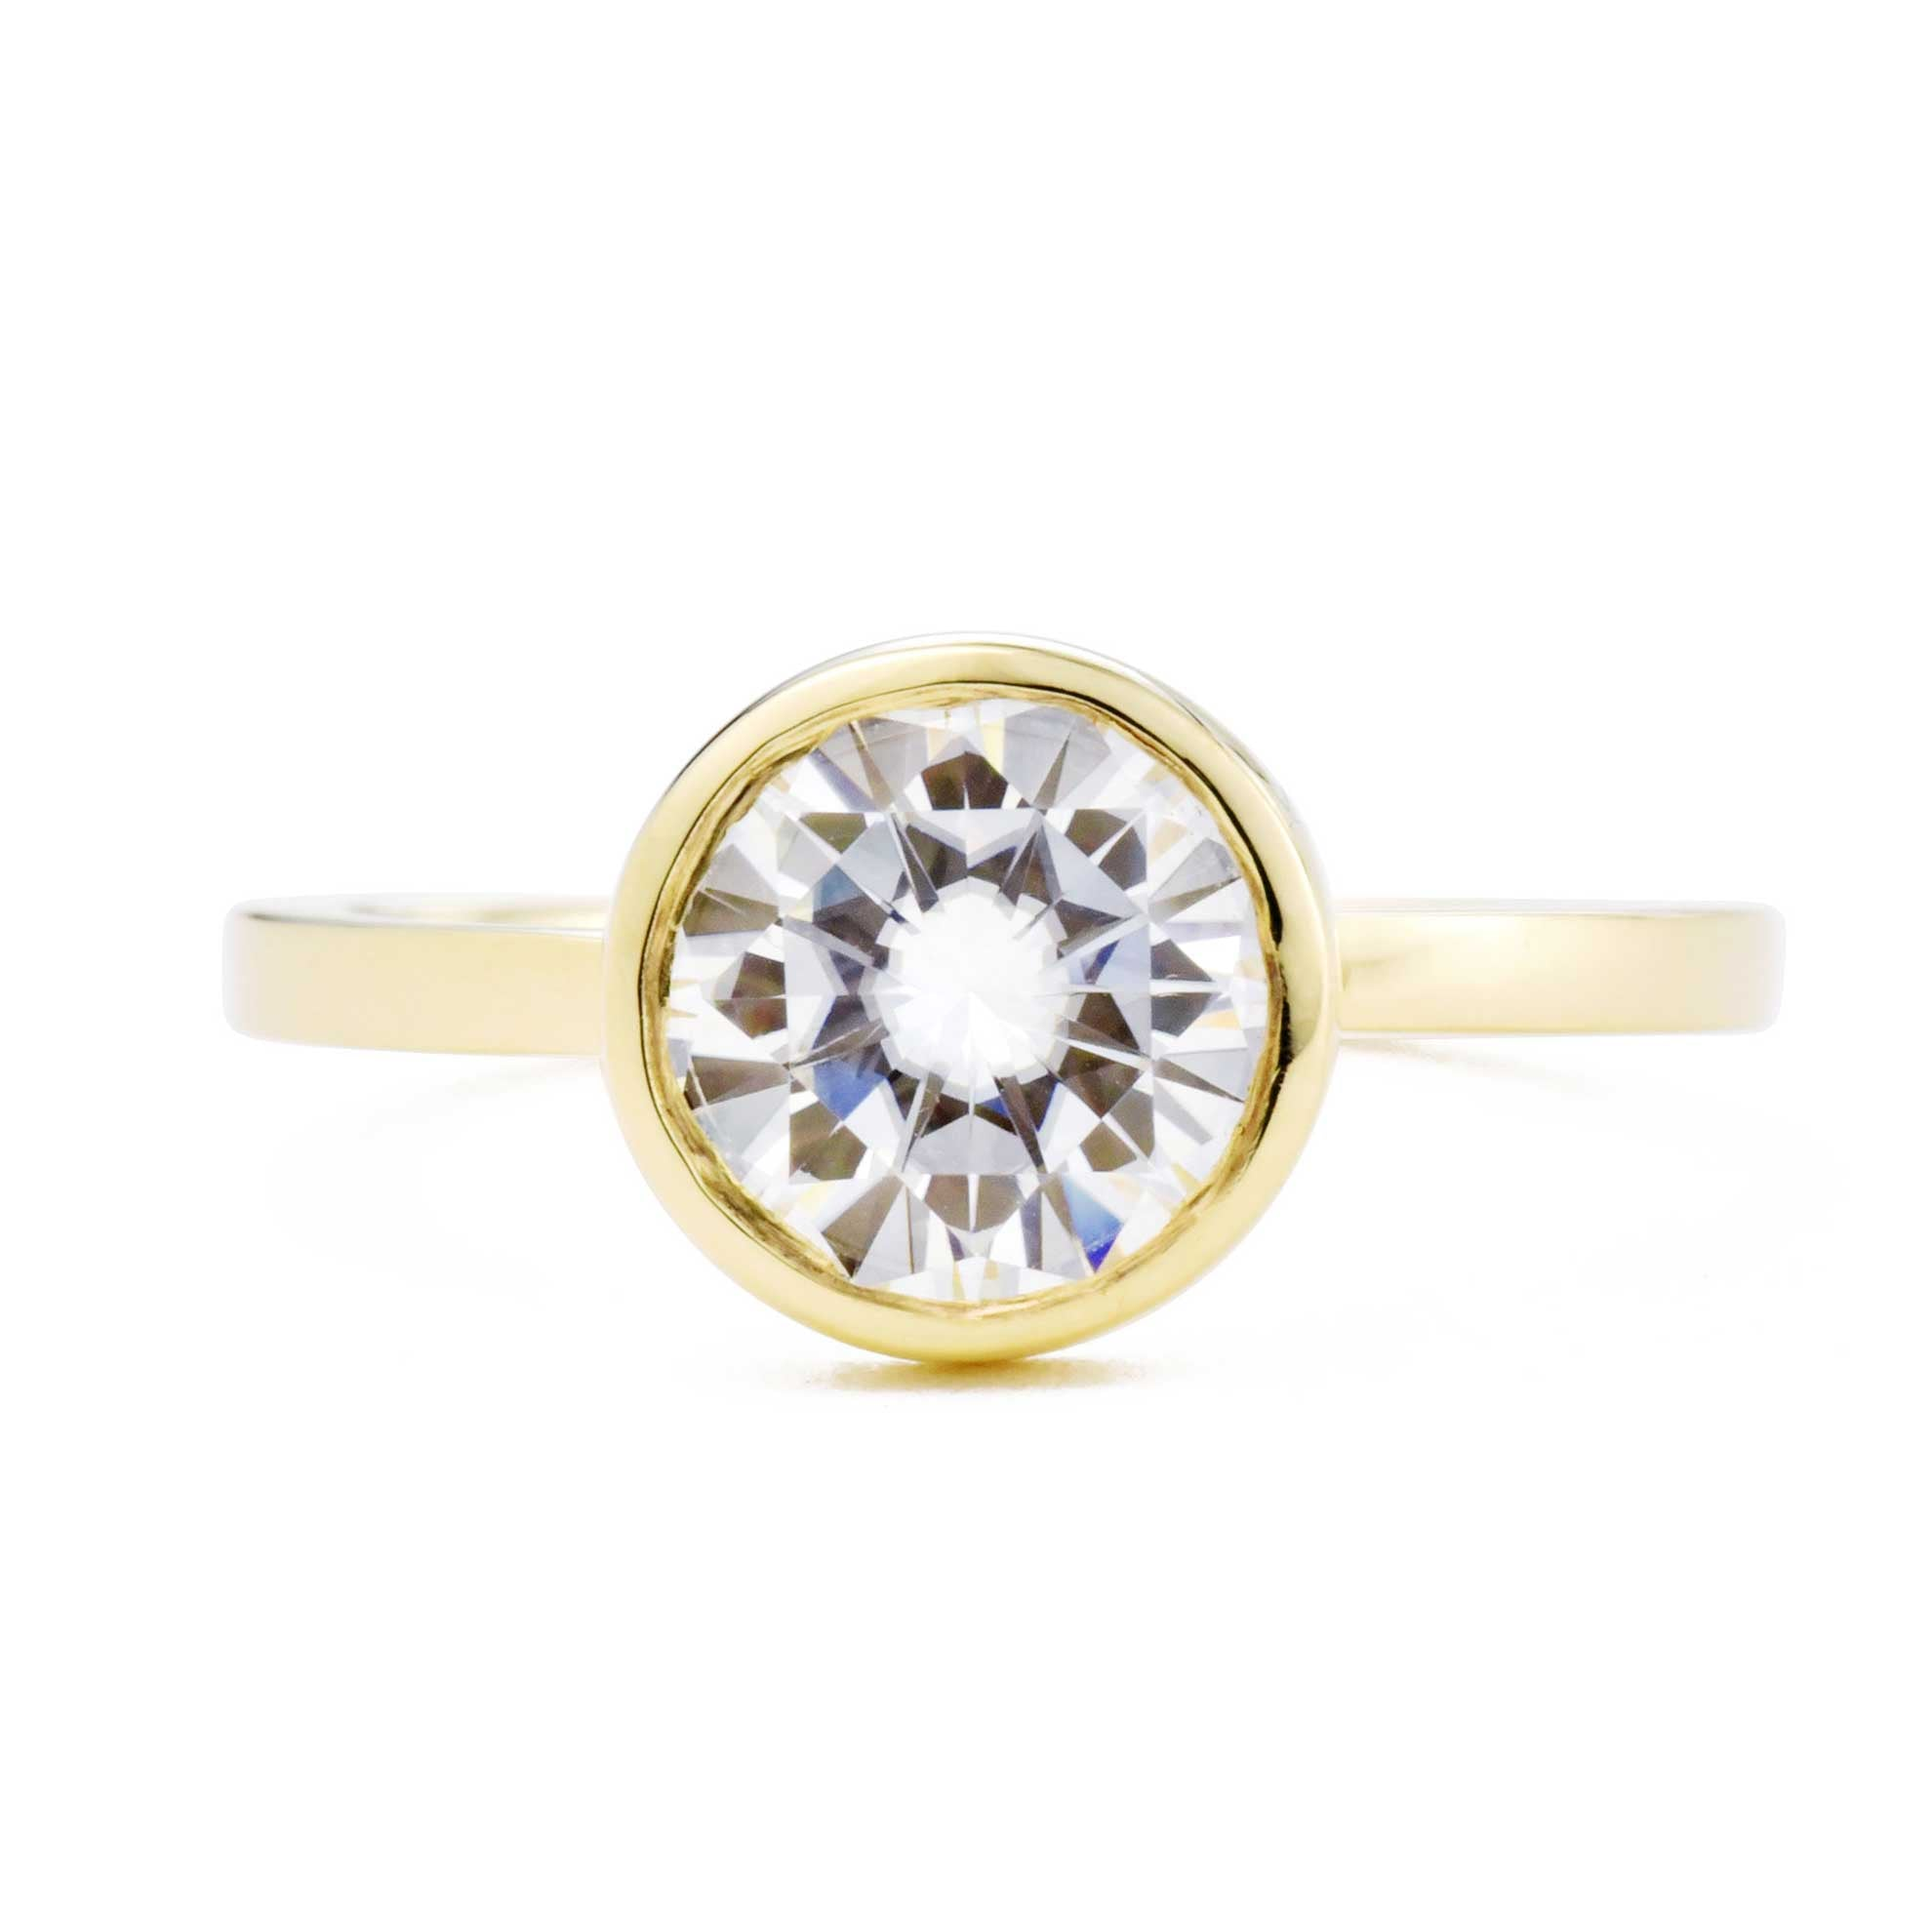 Aura Round Bezel 1.5ct Moissanite Engagement Ring in yellow gold